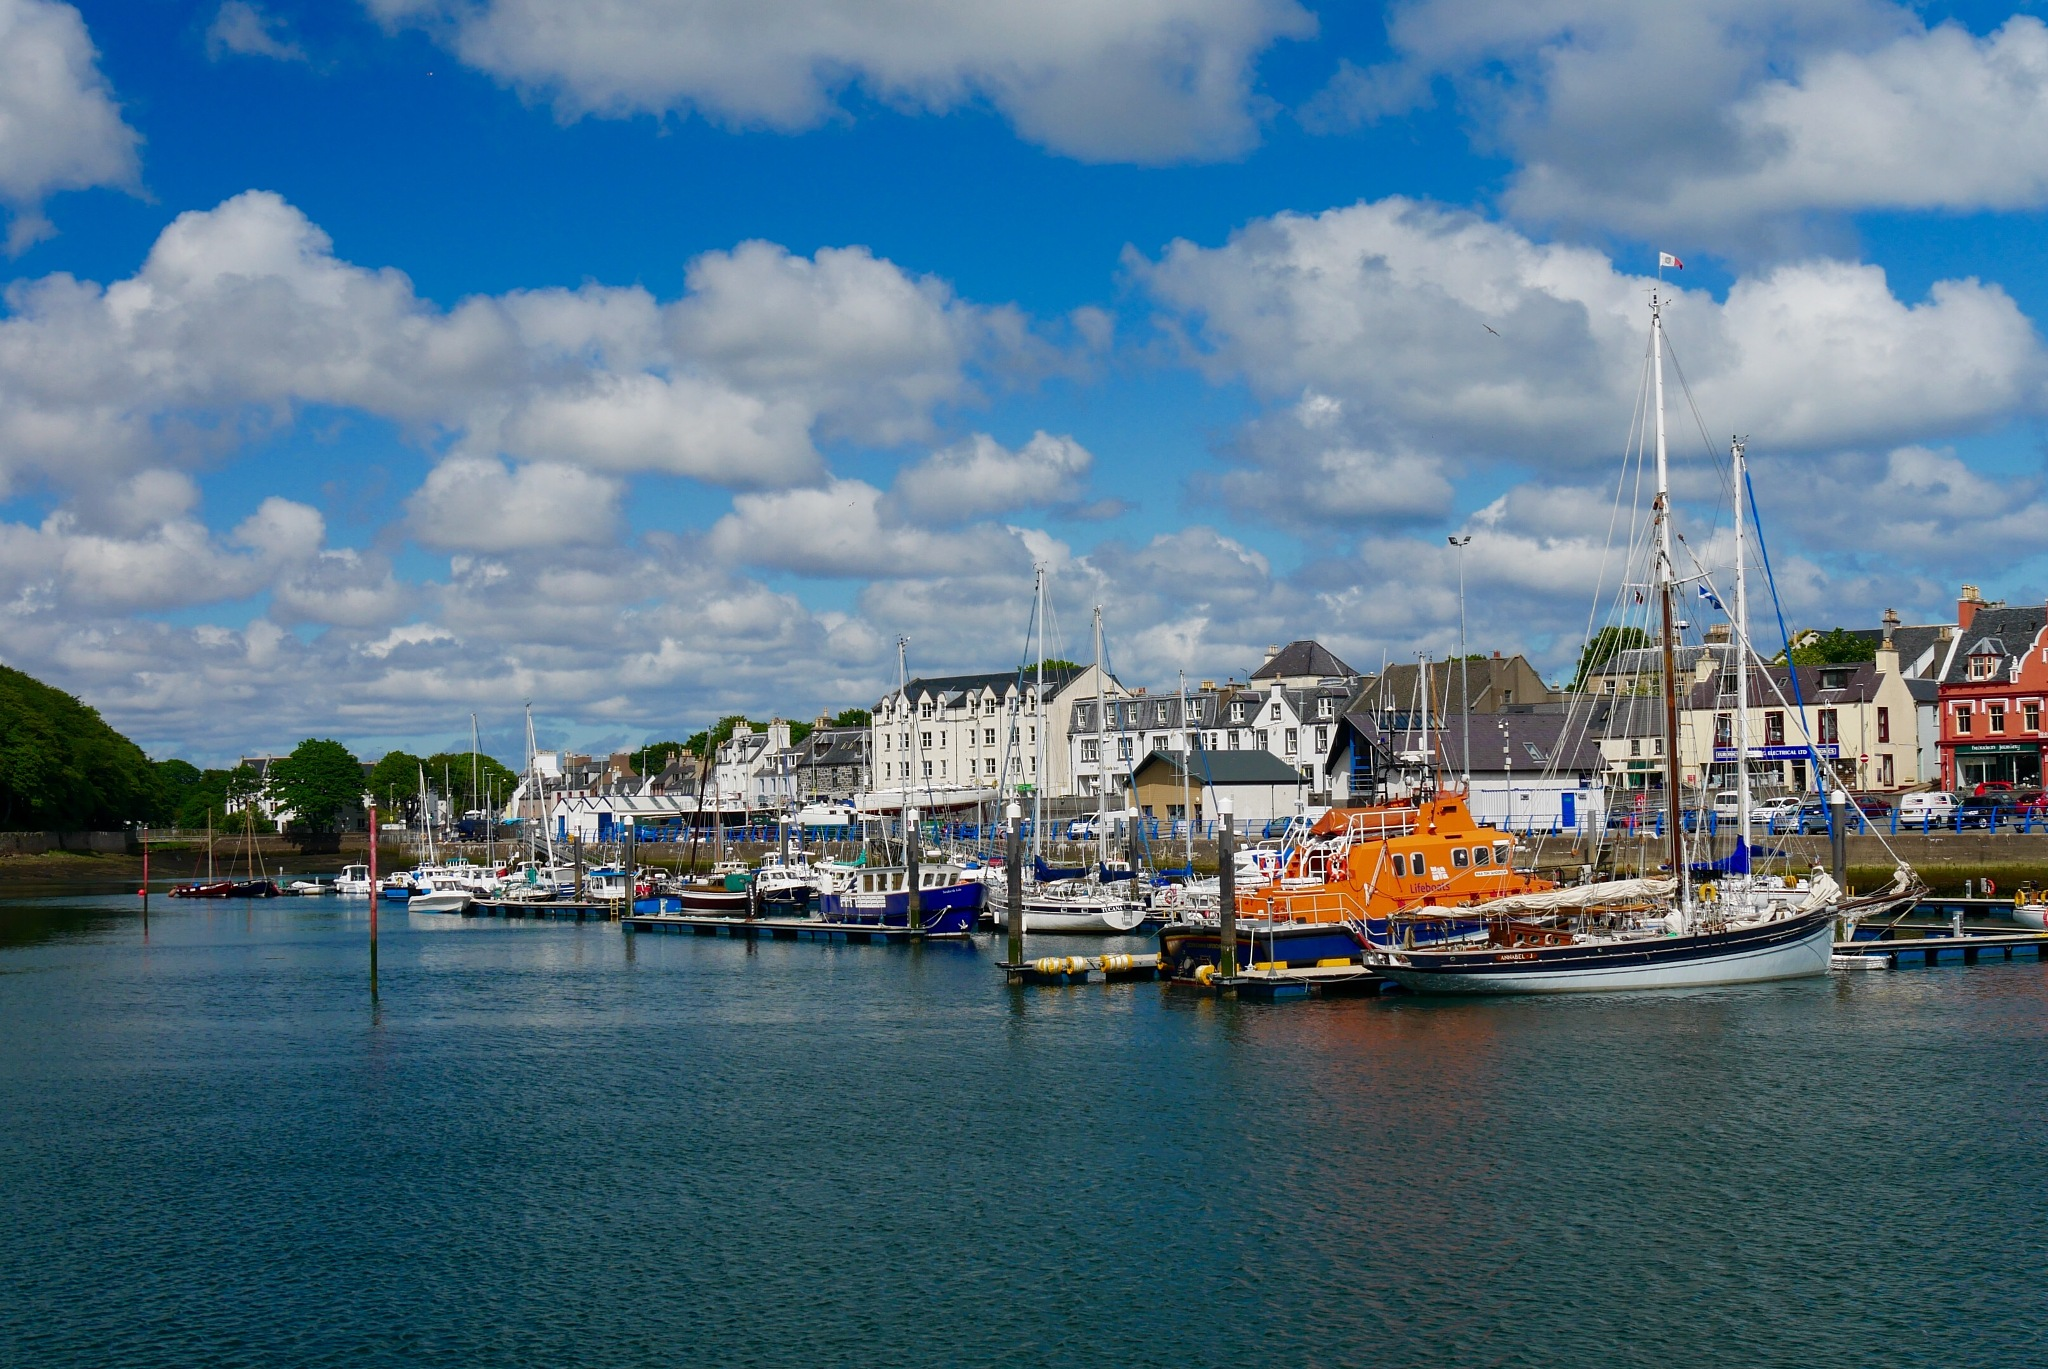 Sy marina by GeorgeABooth